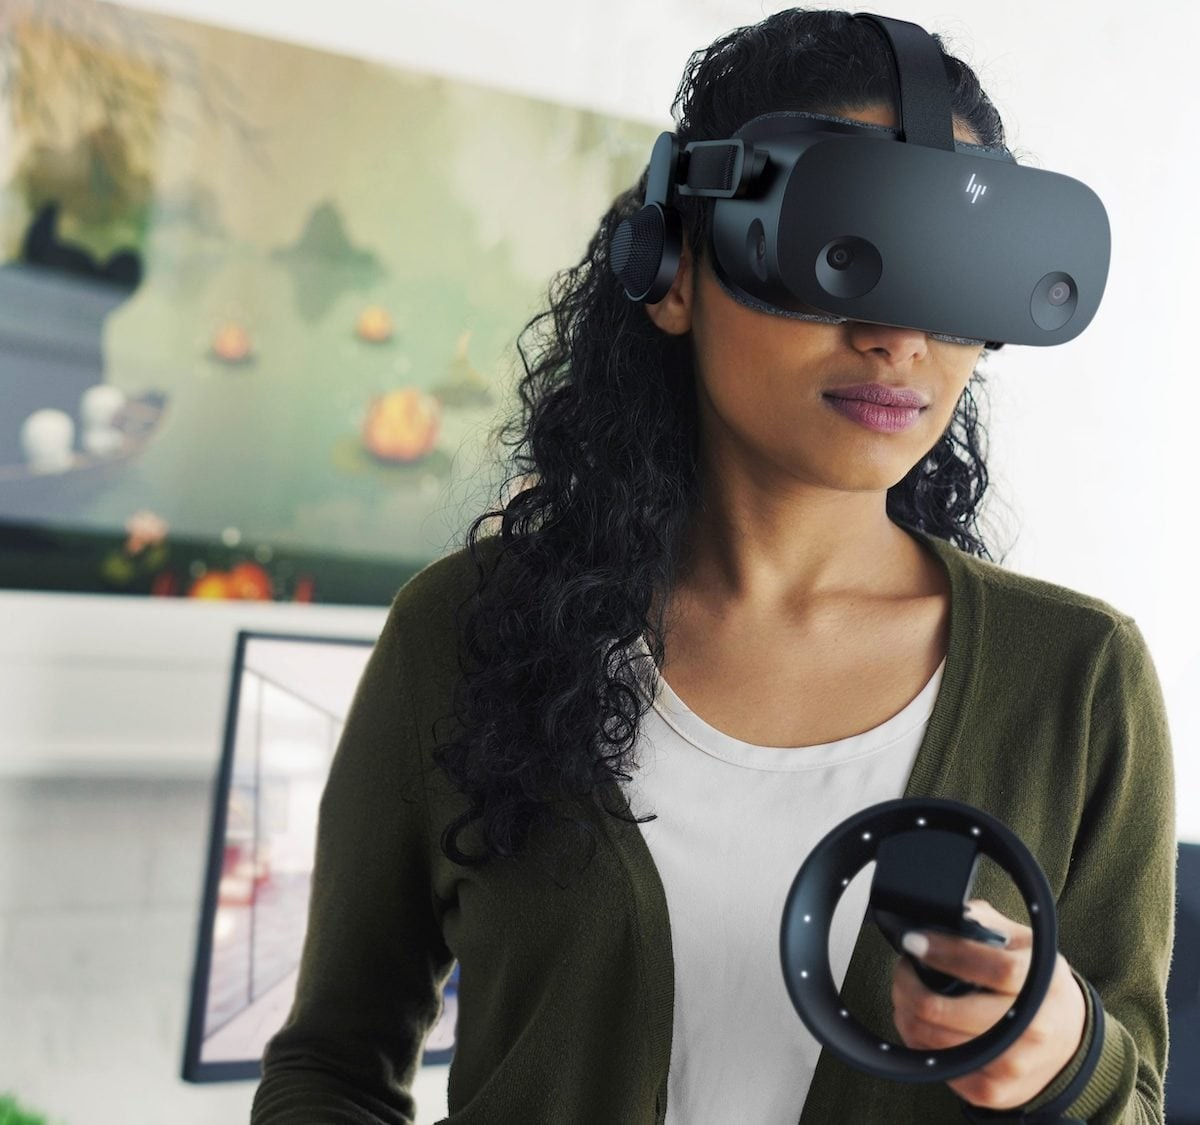 HP Reverb G2 Immersive VR Headset helps you in whatever industry you work